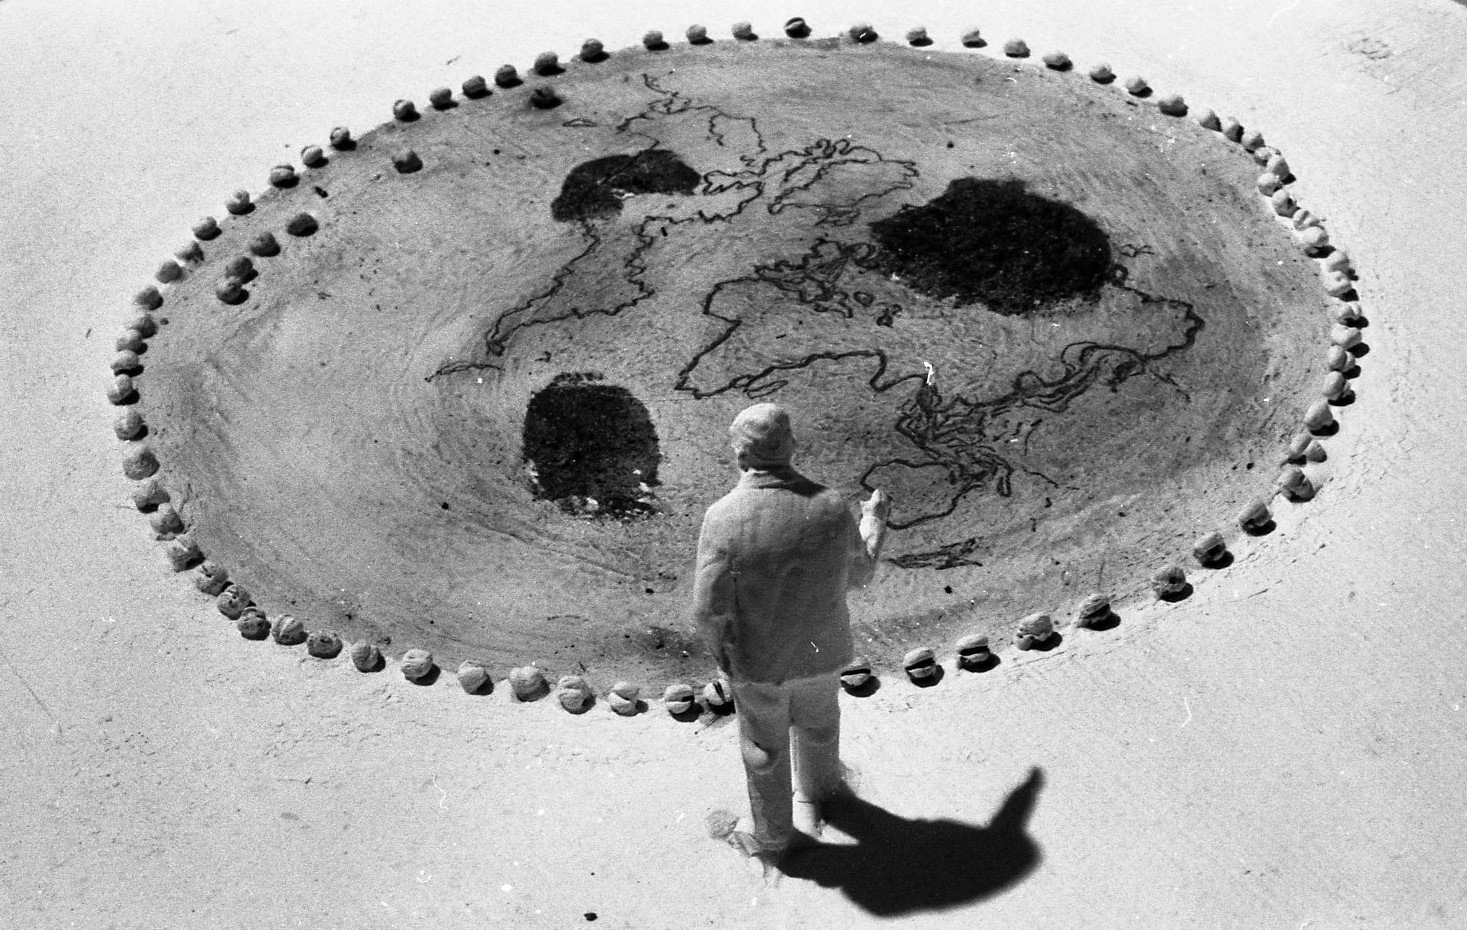 A figure stands beside a circle edged by small stones. A map of the world before the continental drift is drawn inside the circle.